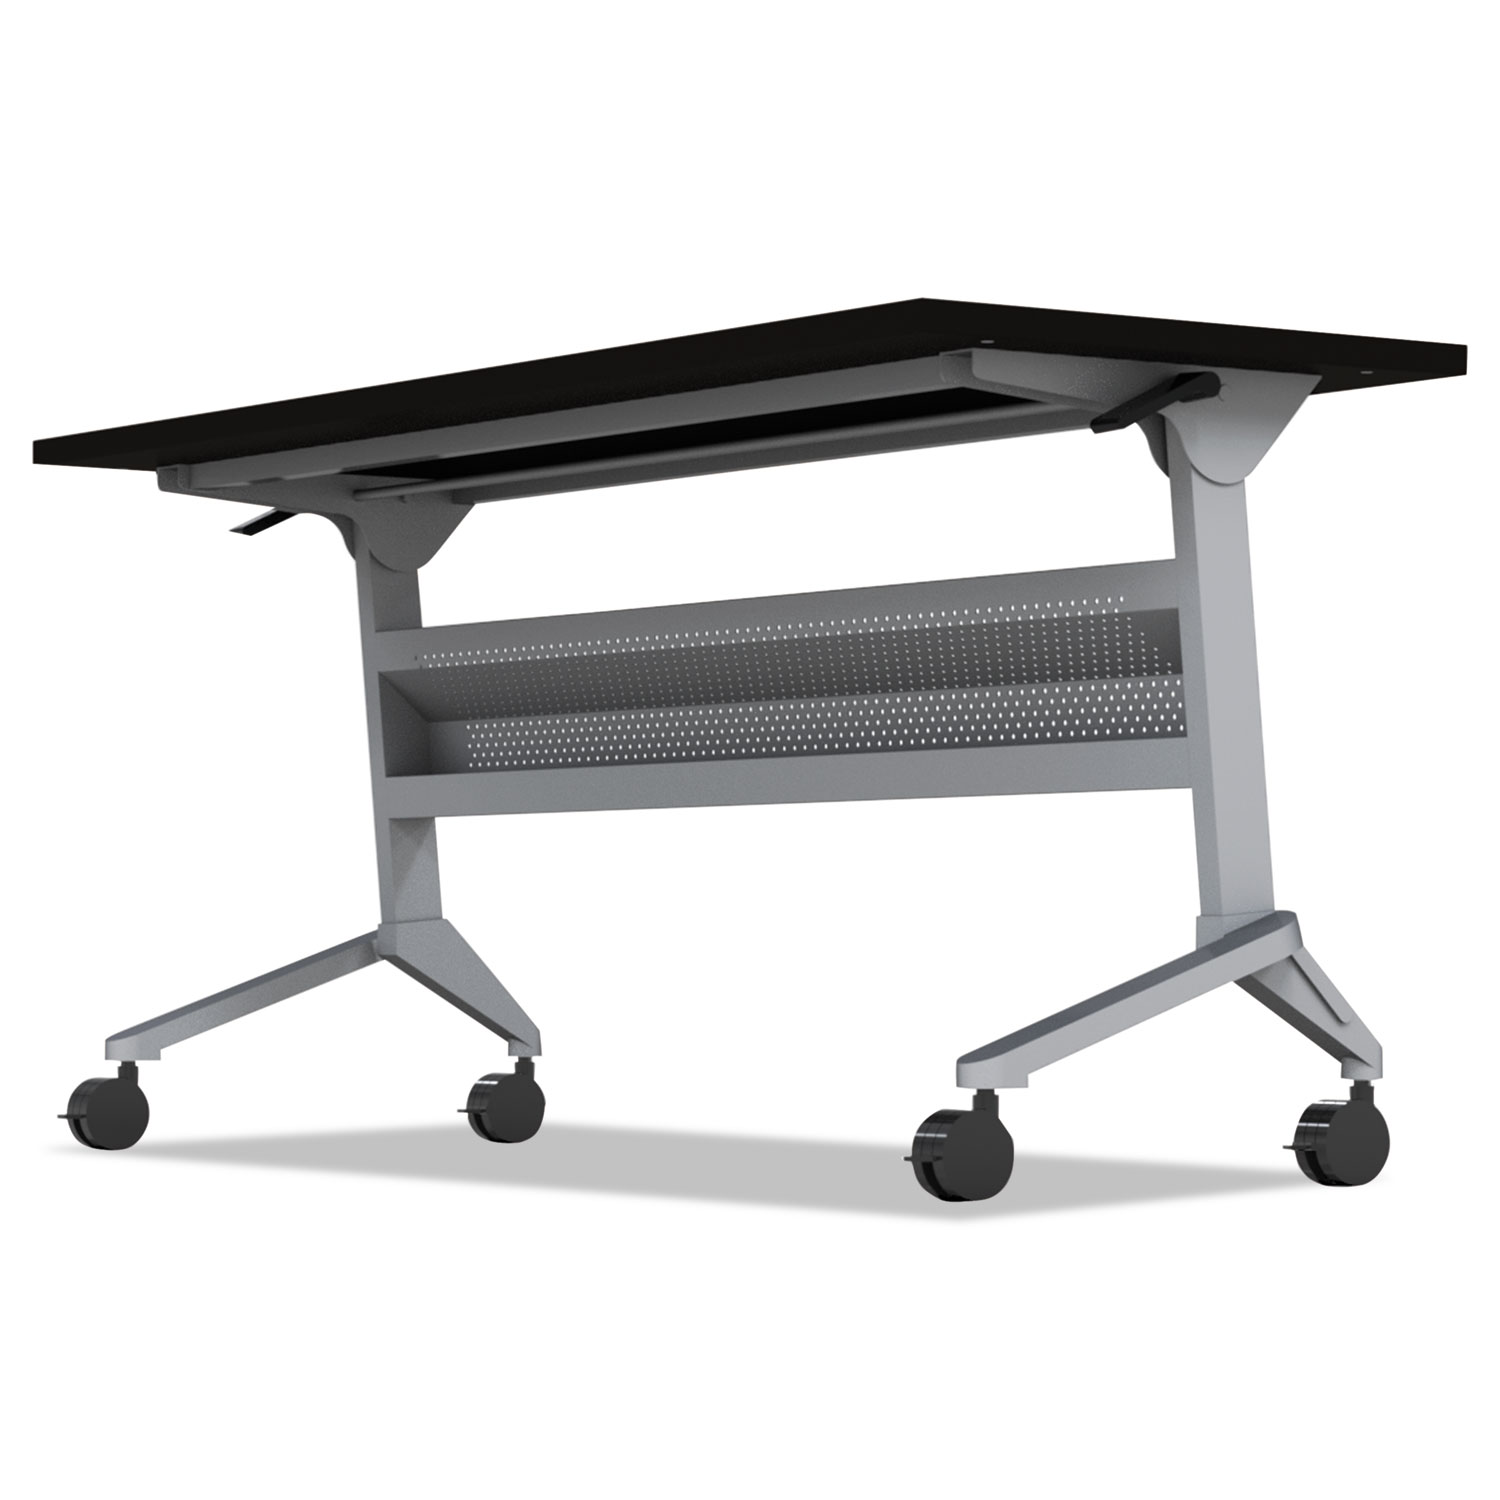 Flip-n-Go Table Base, 46 7/8w x 21 1/4d x 27 7/8h, Silver